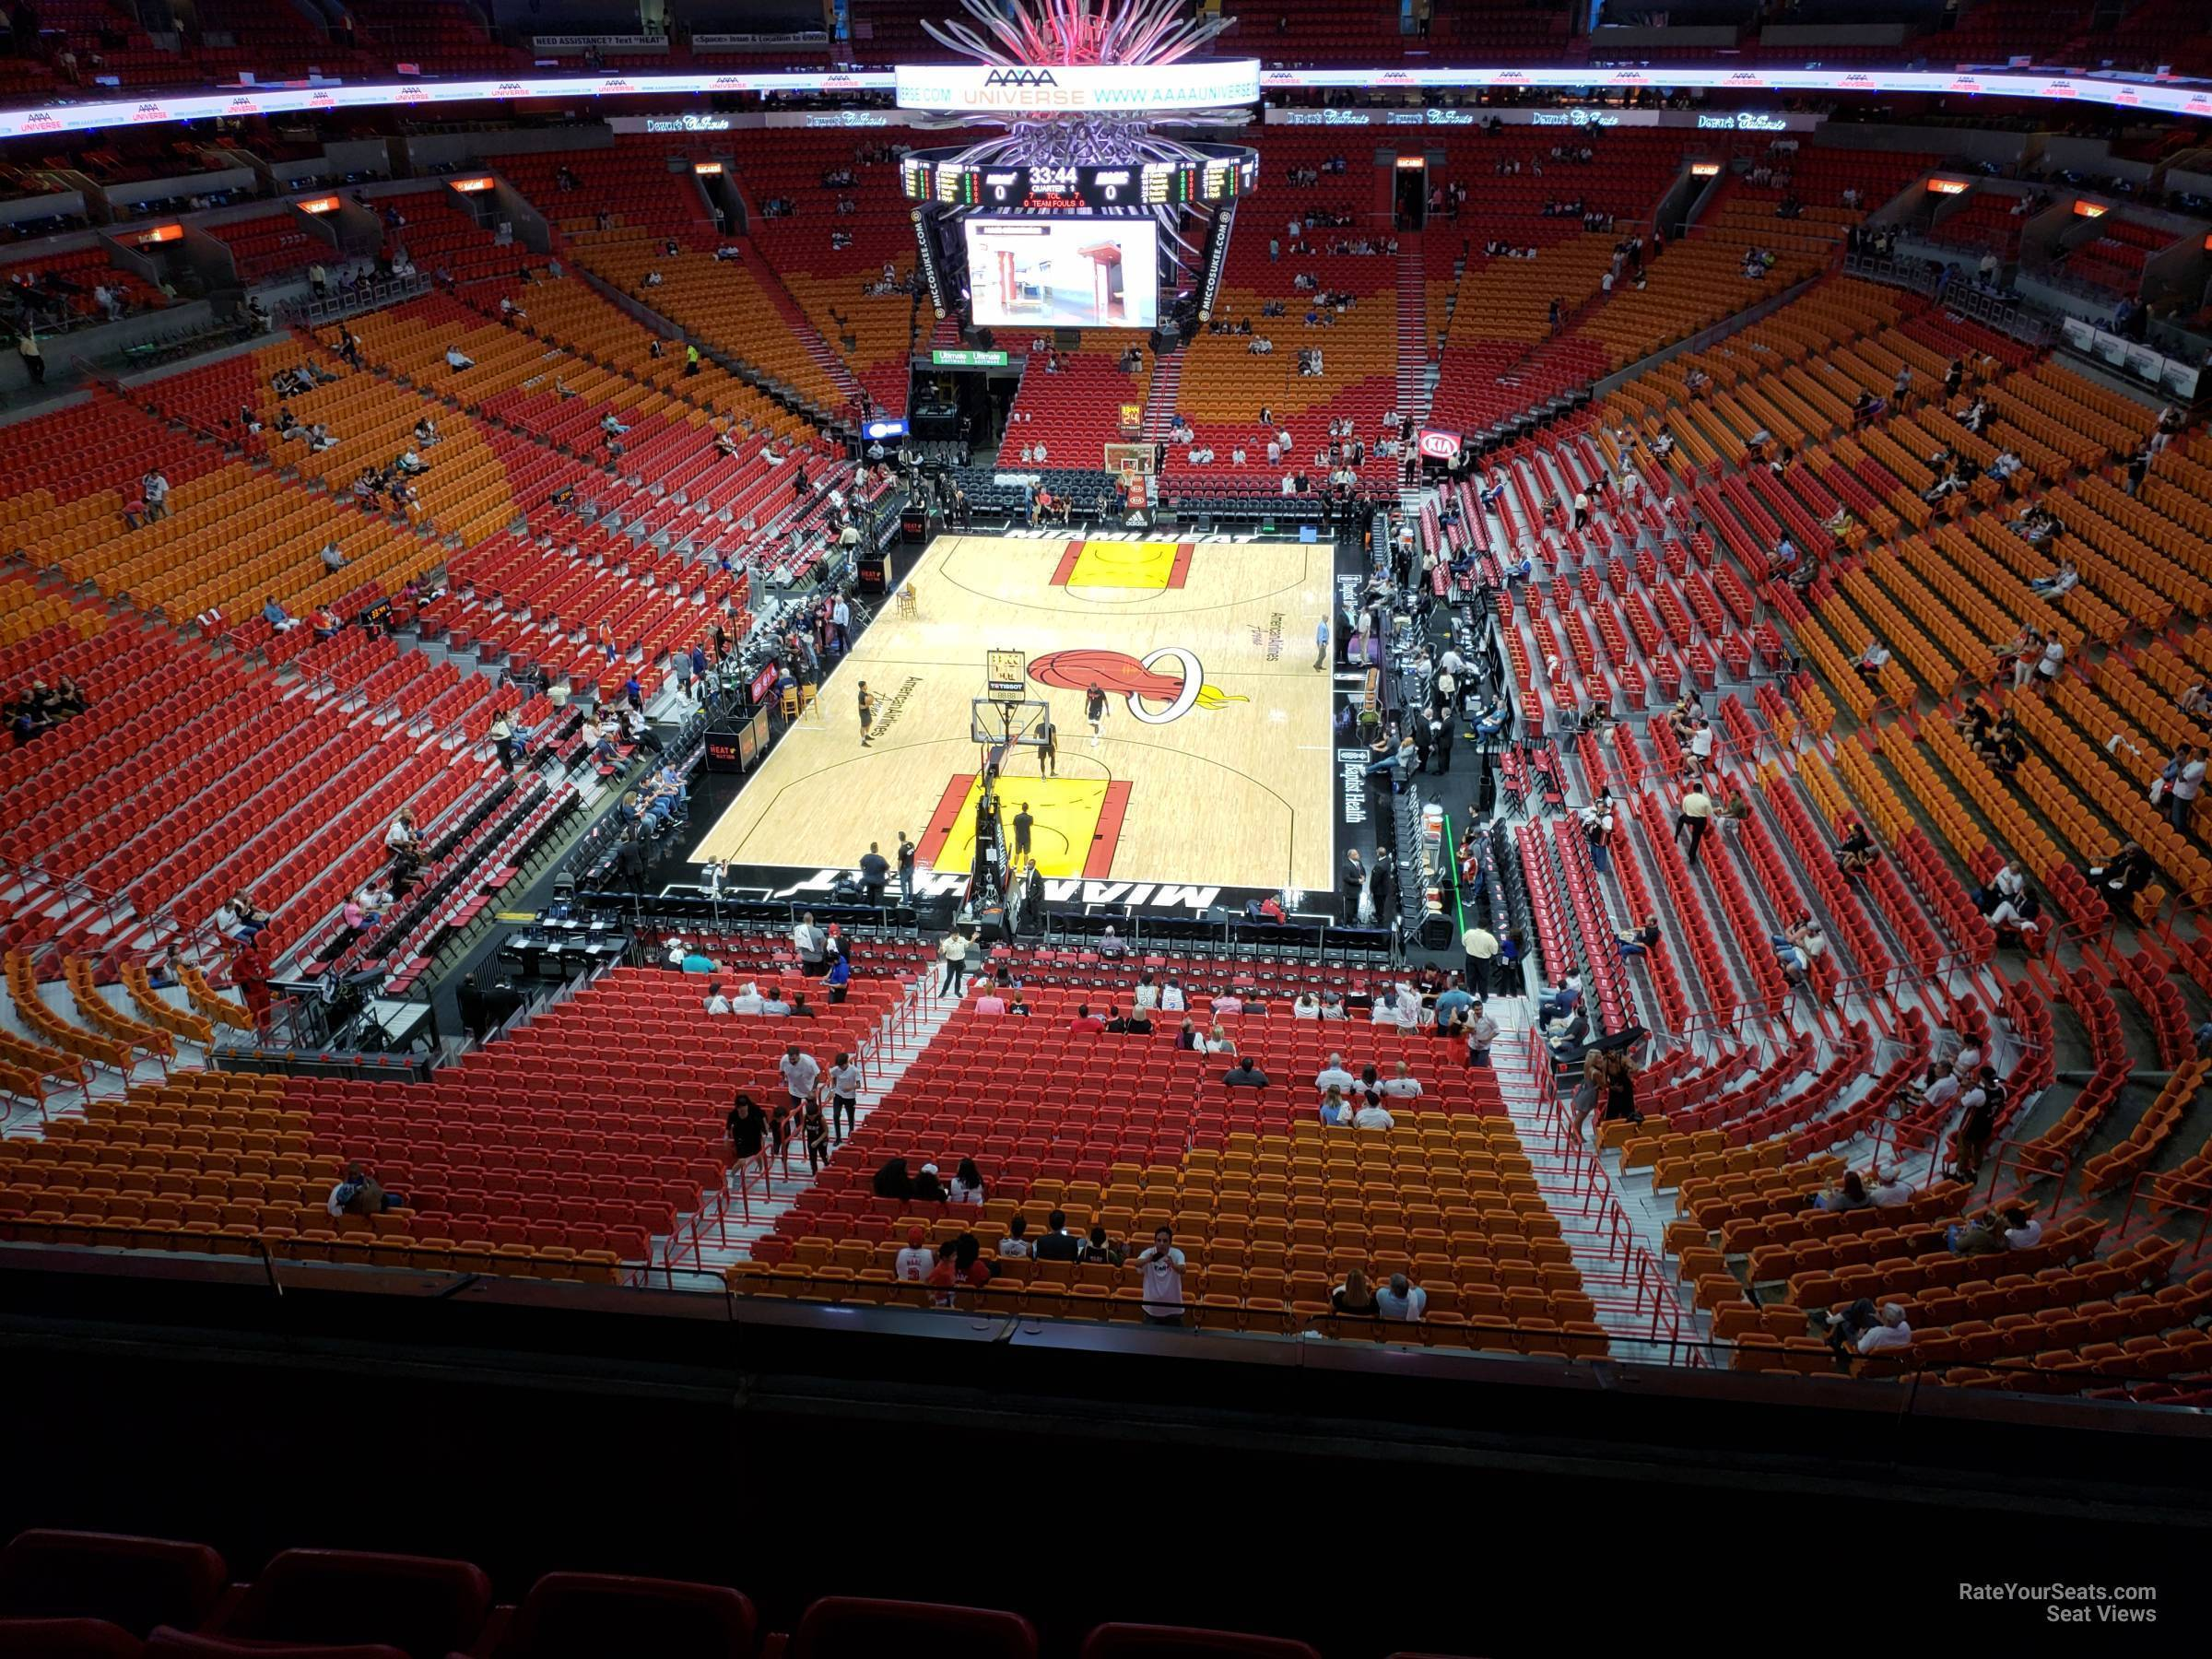 section 316 at americanairlines arena - miami heat